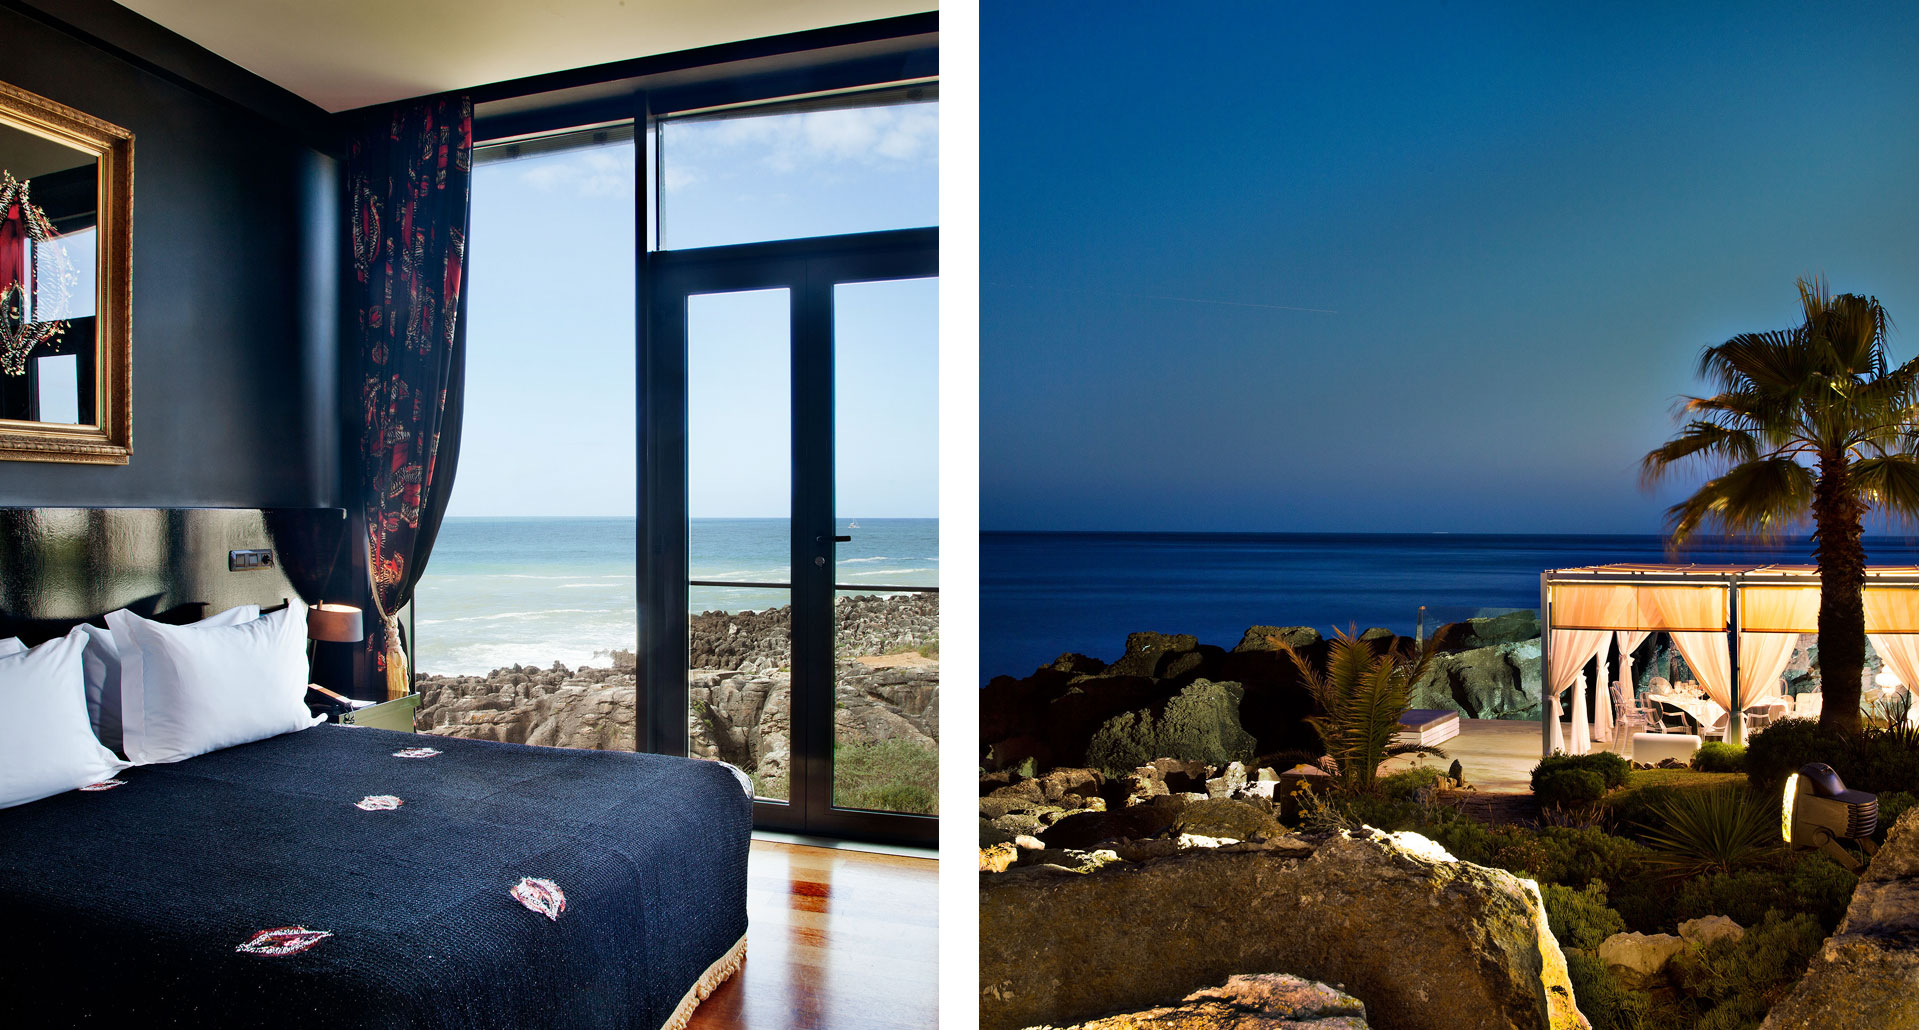 Farol Design Hotel - boutique hotel in Cascais